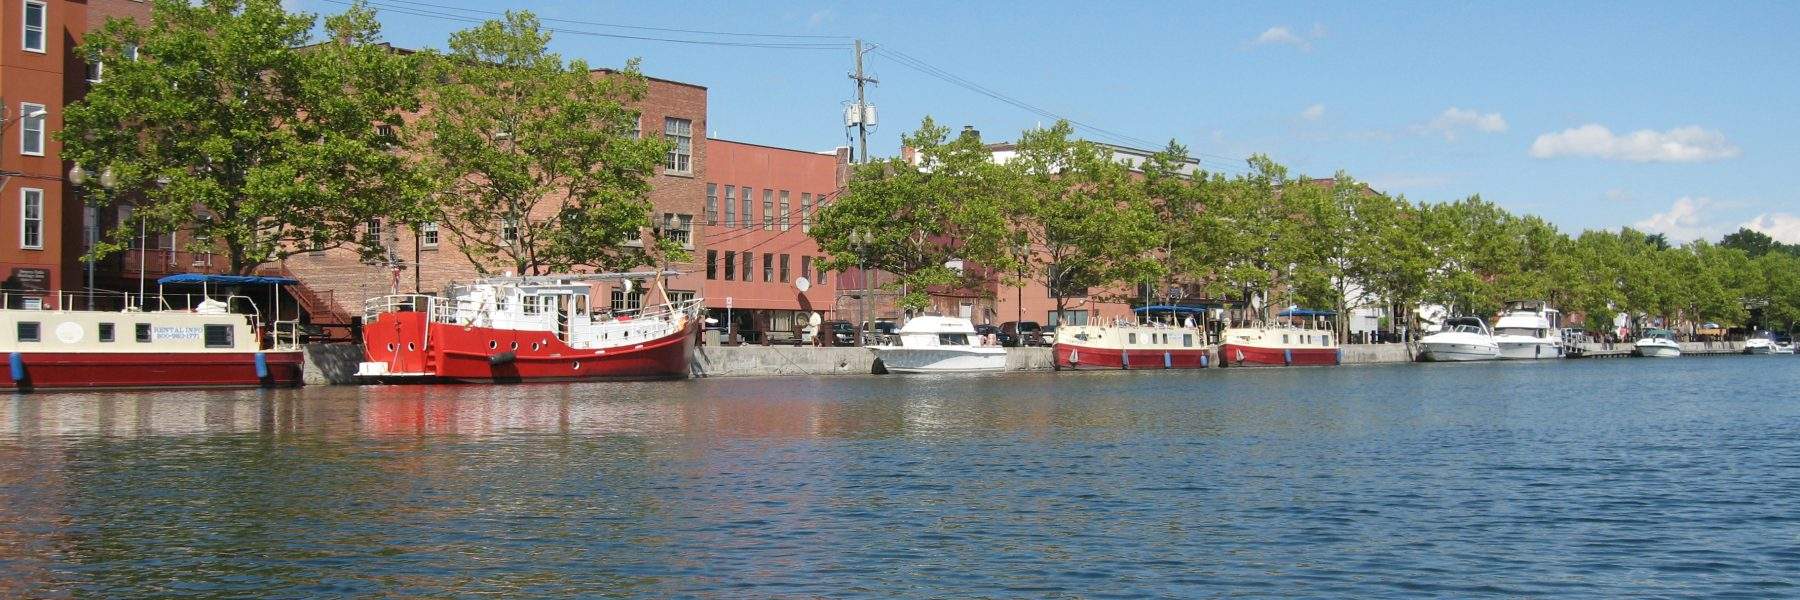 Seneca Falls Public Docks with canal barges